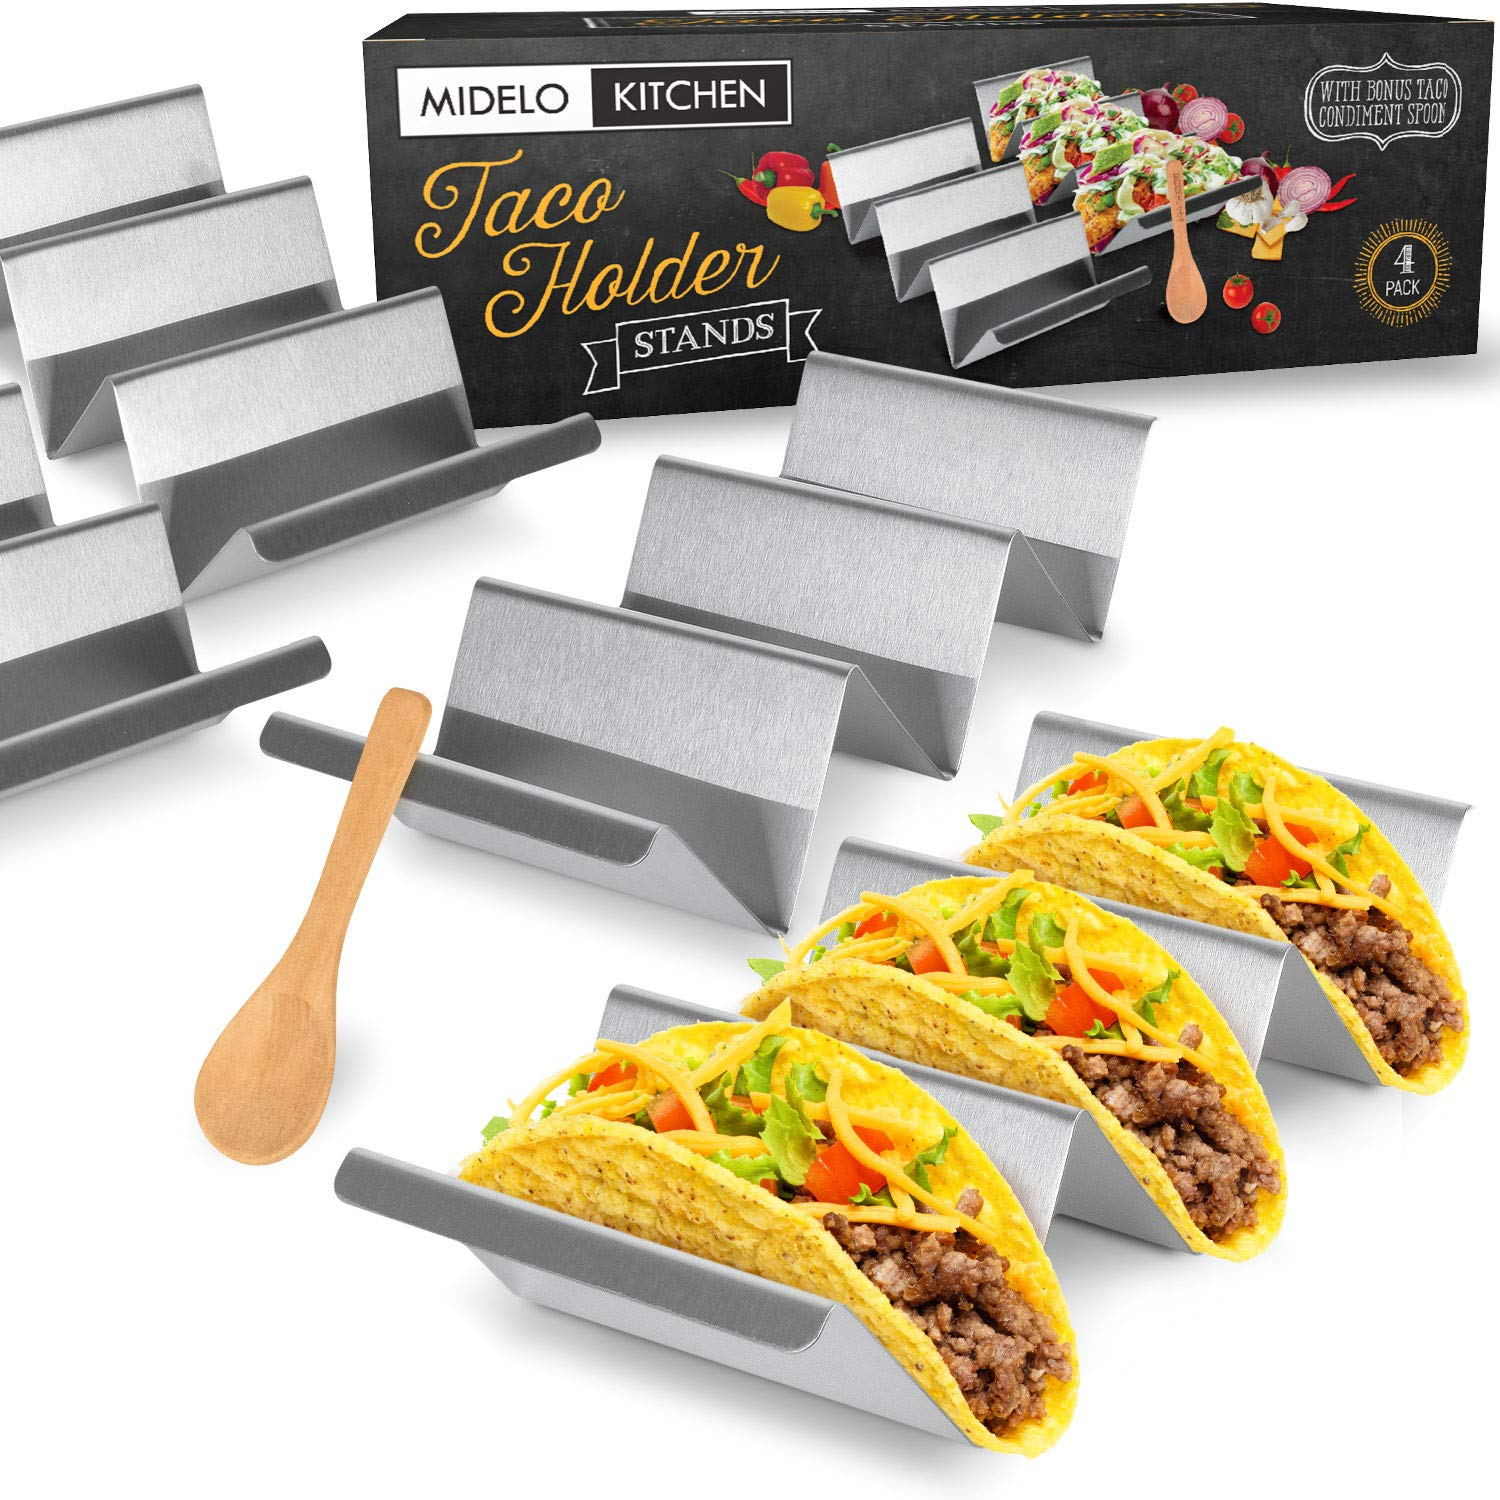 Taco Holder Stands (4 Pack) w/BONUS Serving Spoon - Dishwasher & Oven Safe Taco Racks - Made From Durable Food-Grade Stainless Steel - Easily Fill Your Tacos & Serve Them With The Built-In Handles